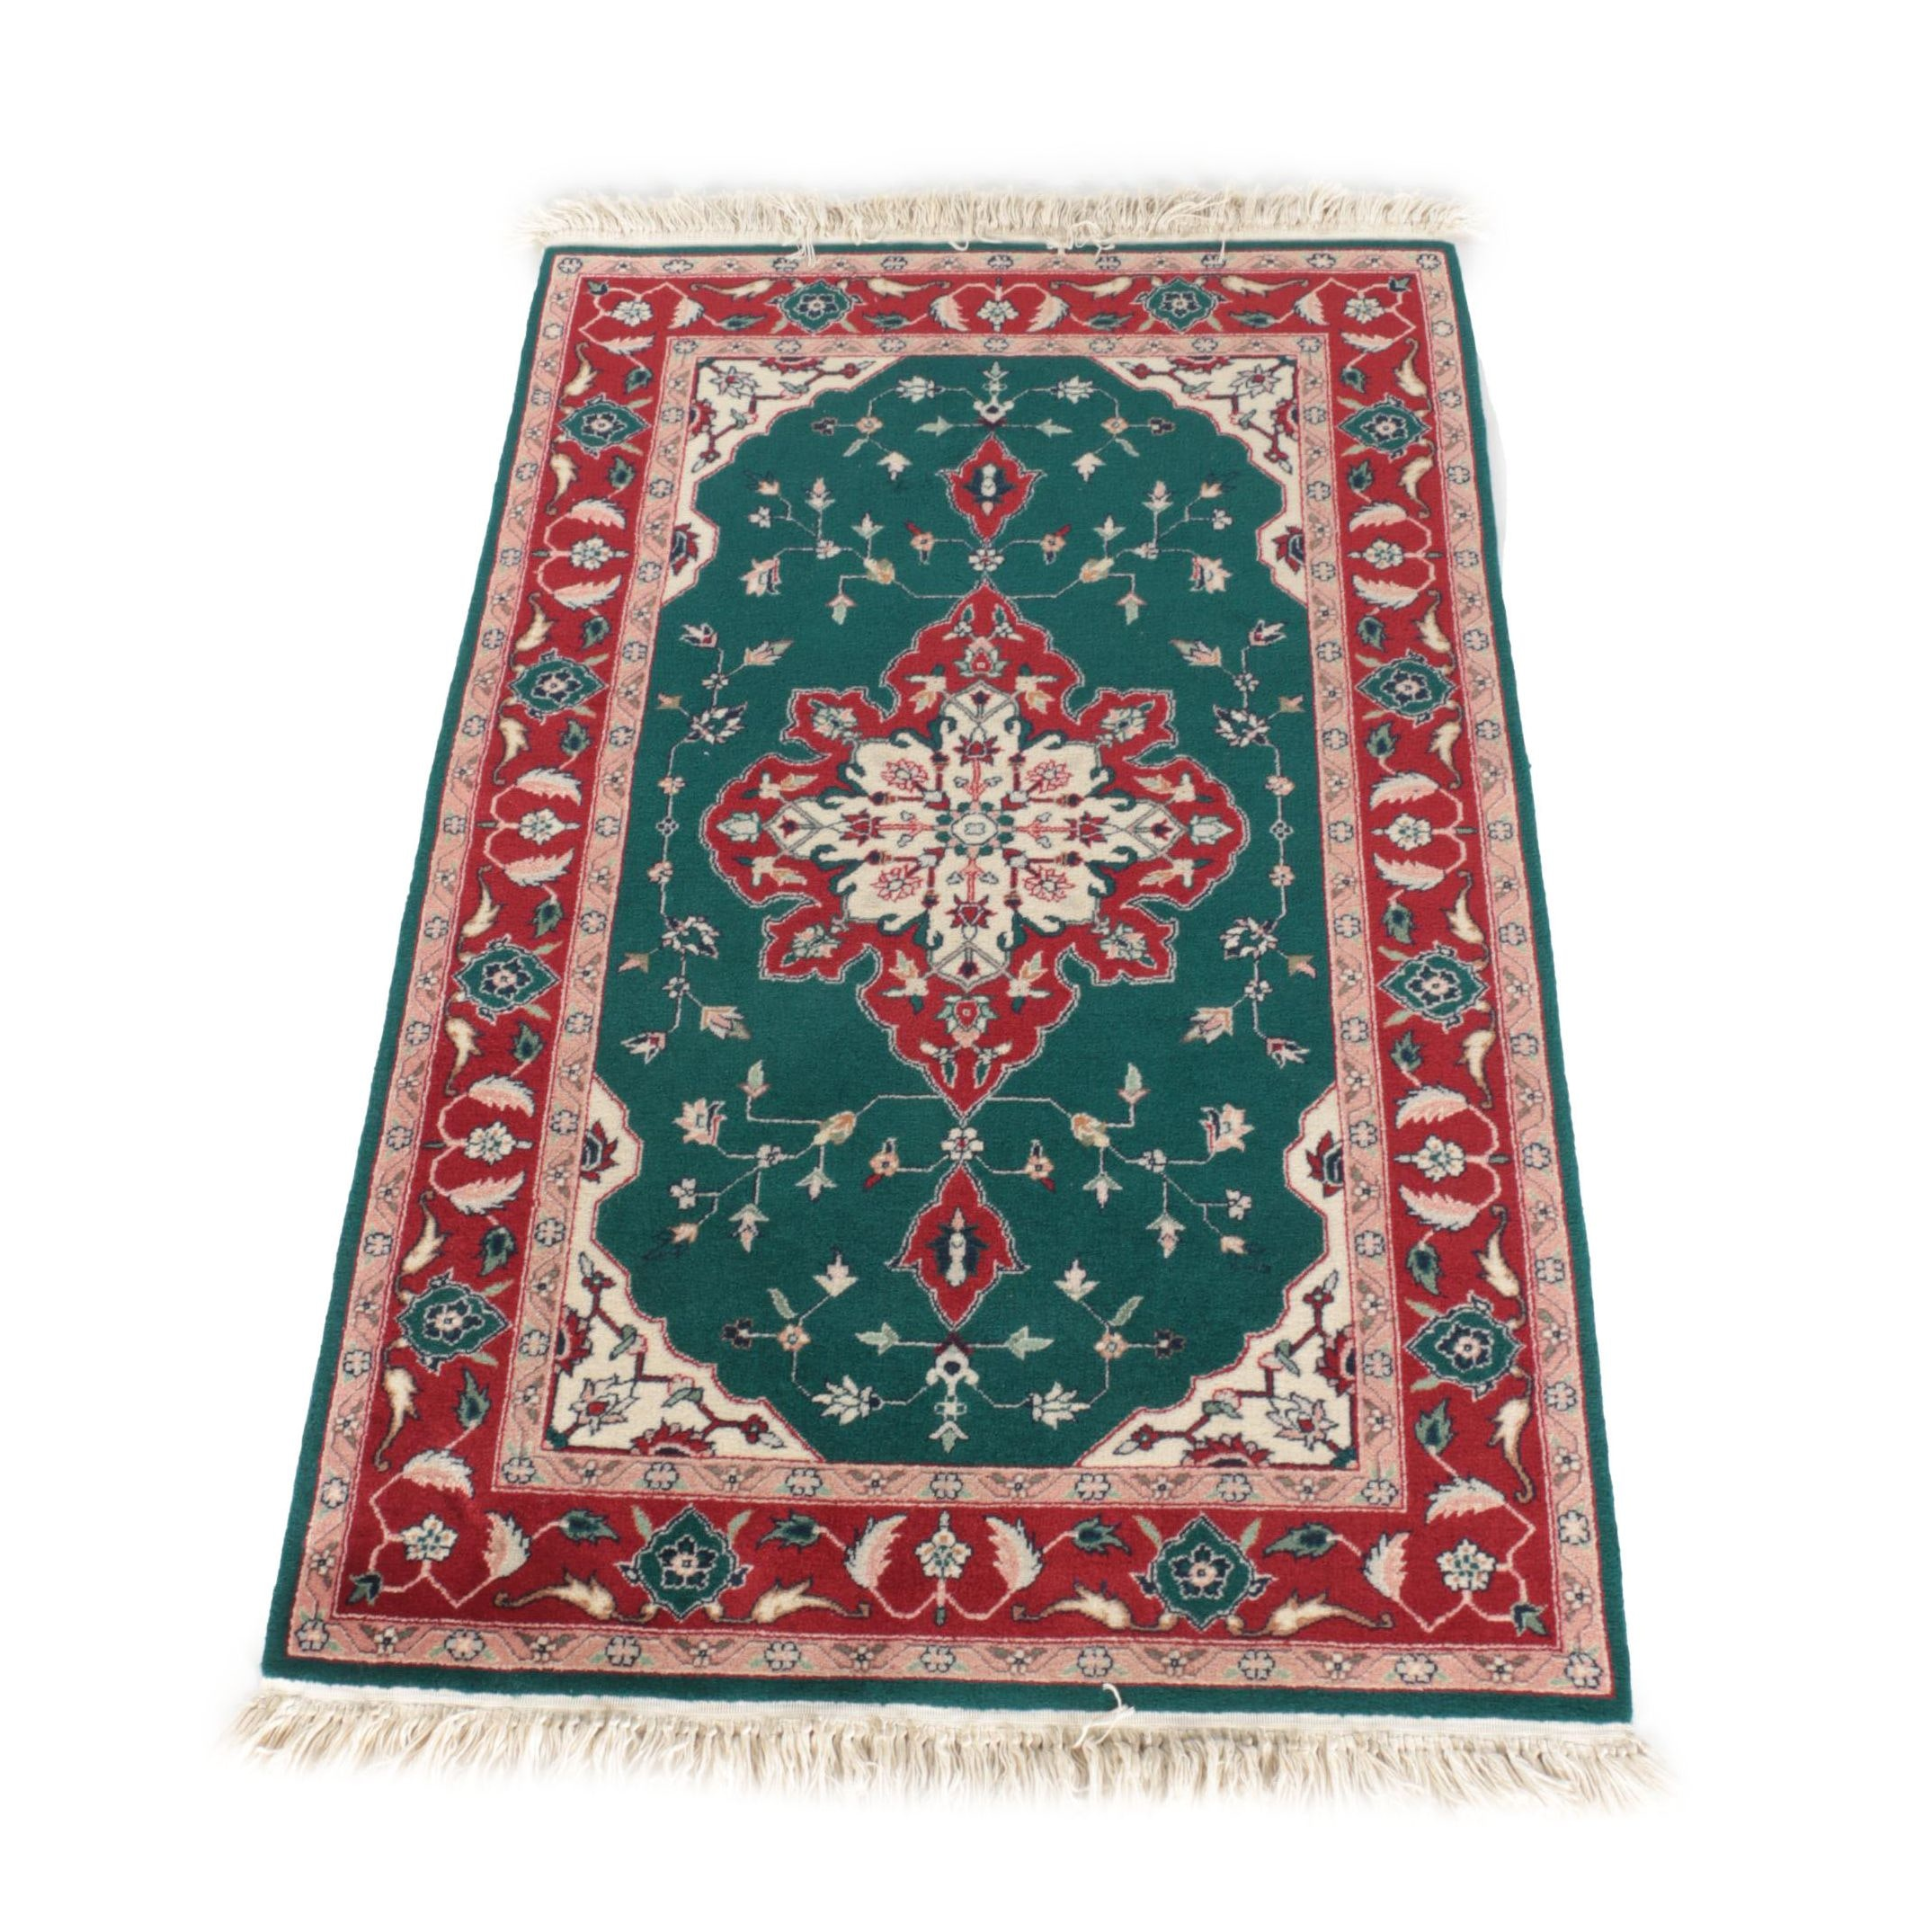 Hand-Knotted Heriz-Style Area Rug